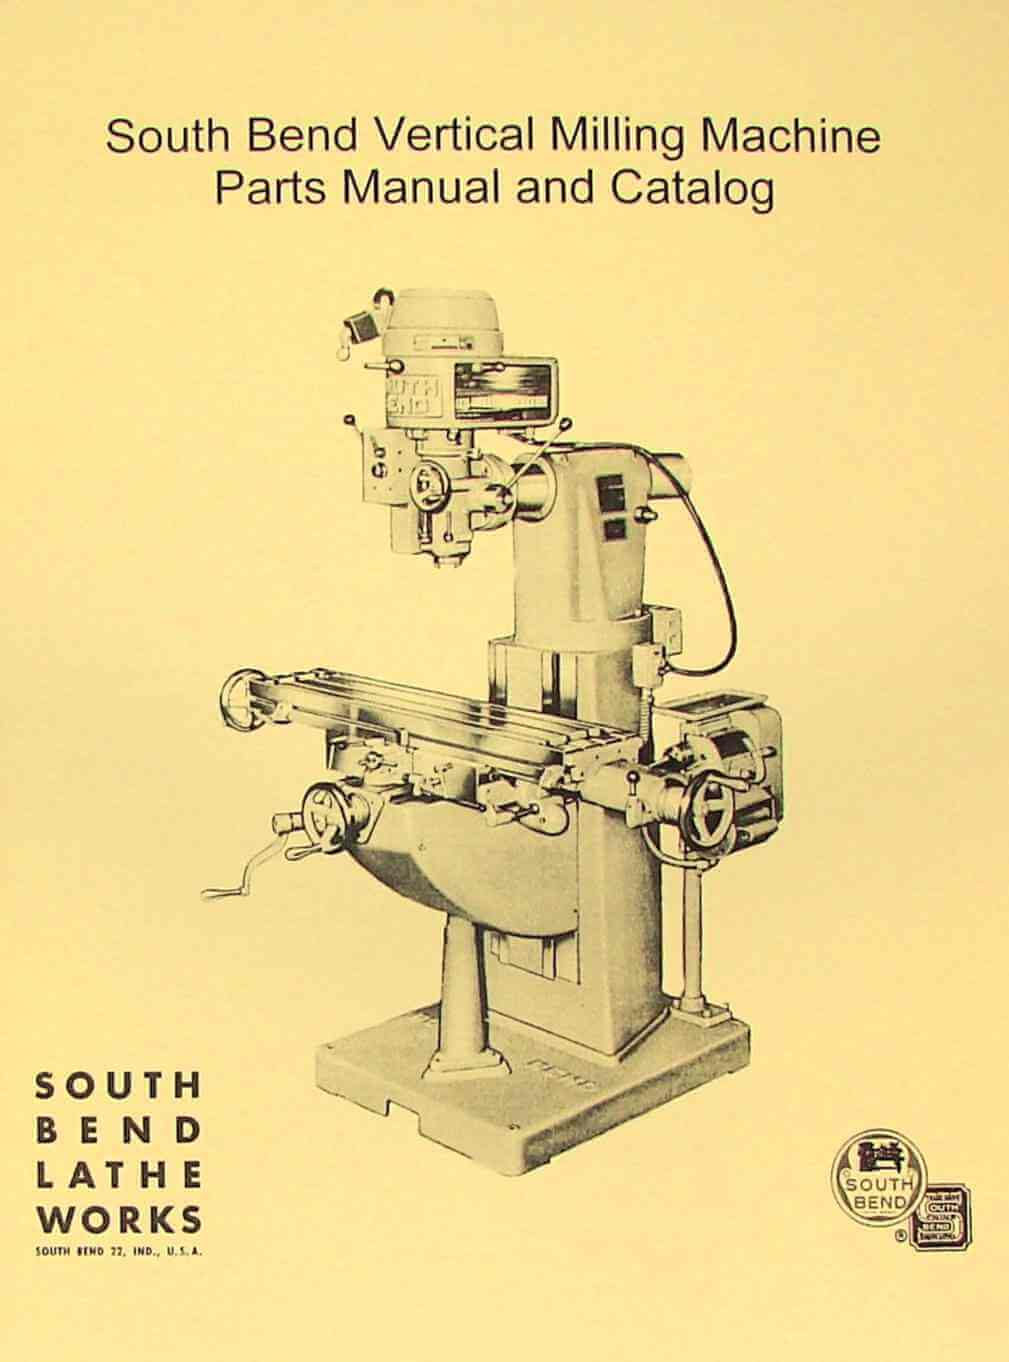 SOUTH BEND Vertical Milling Machine Parts Manual